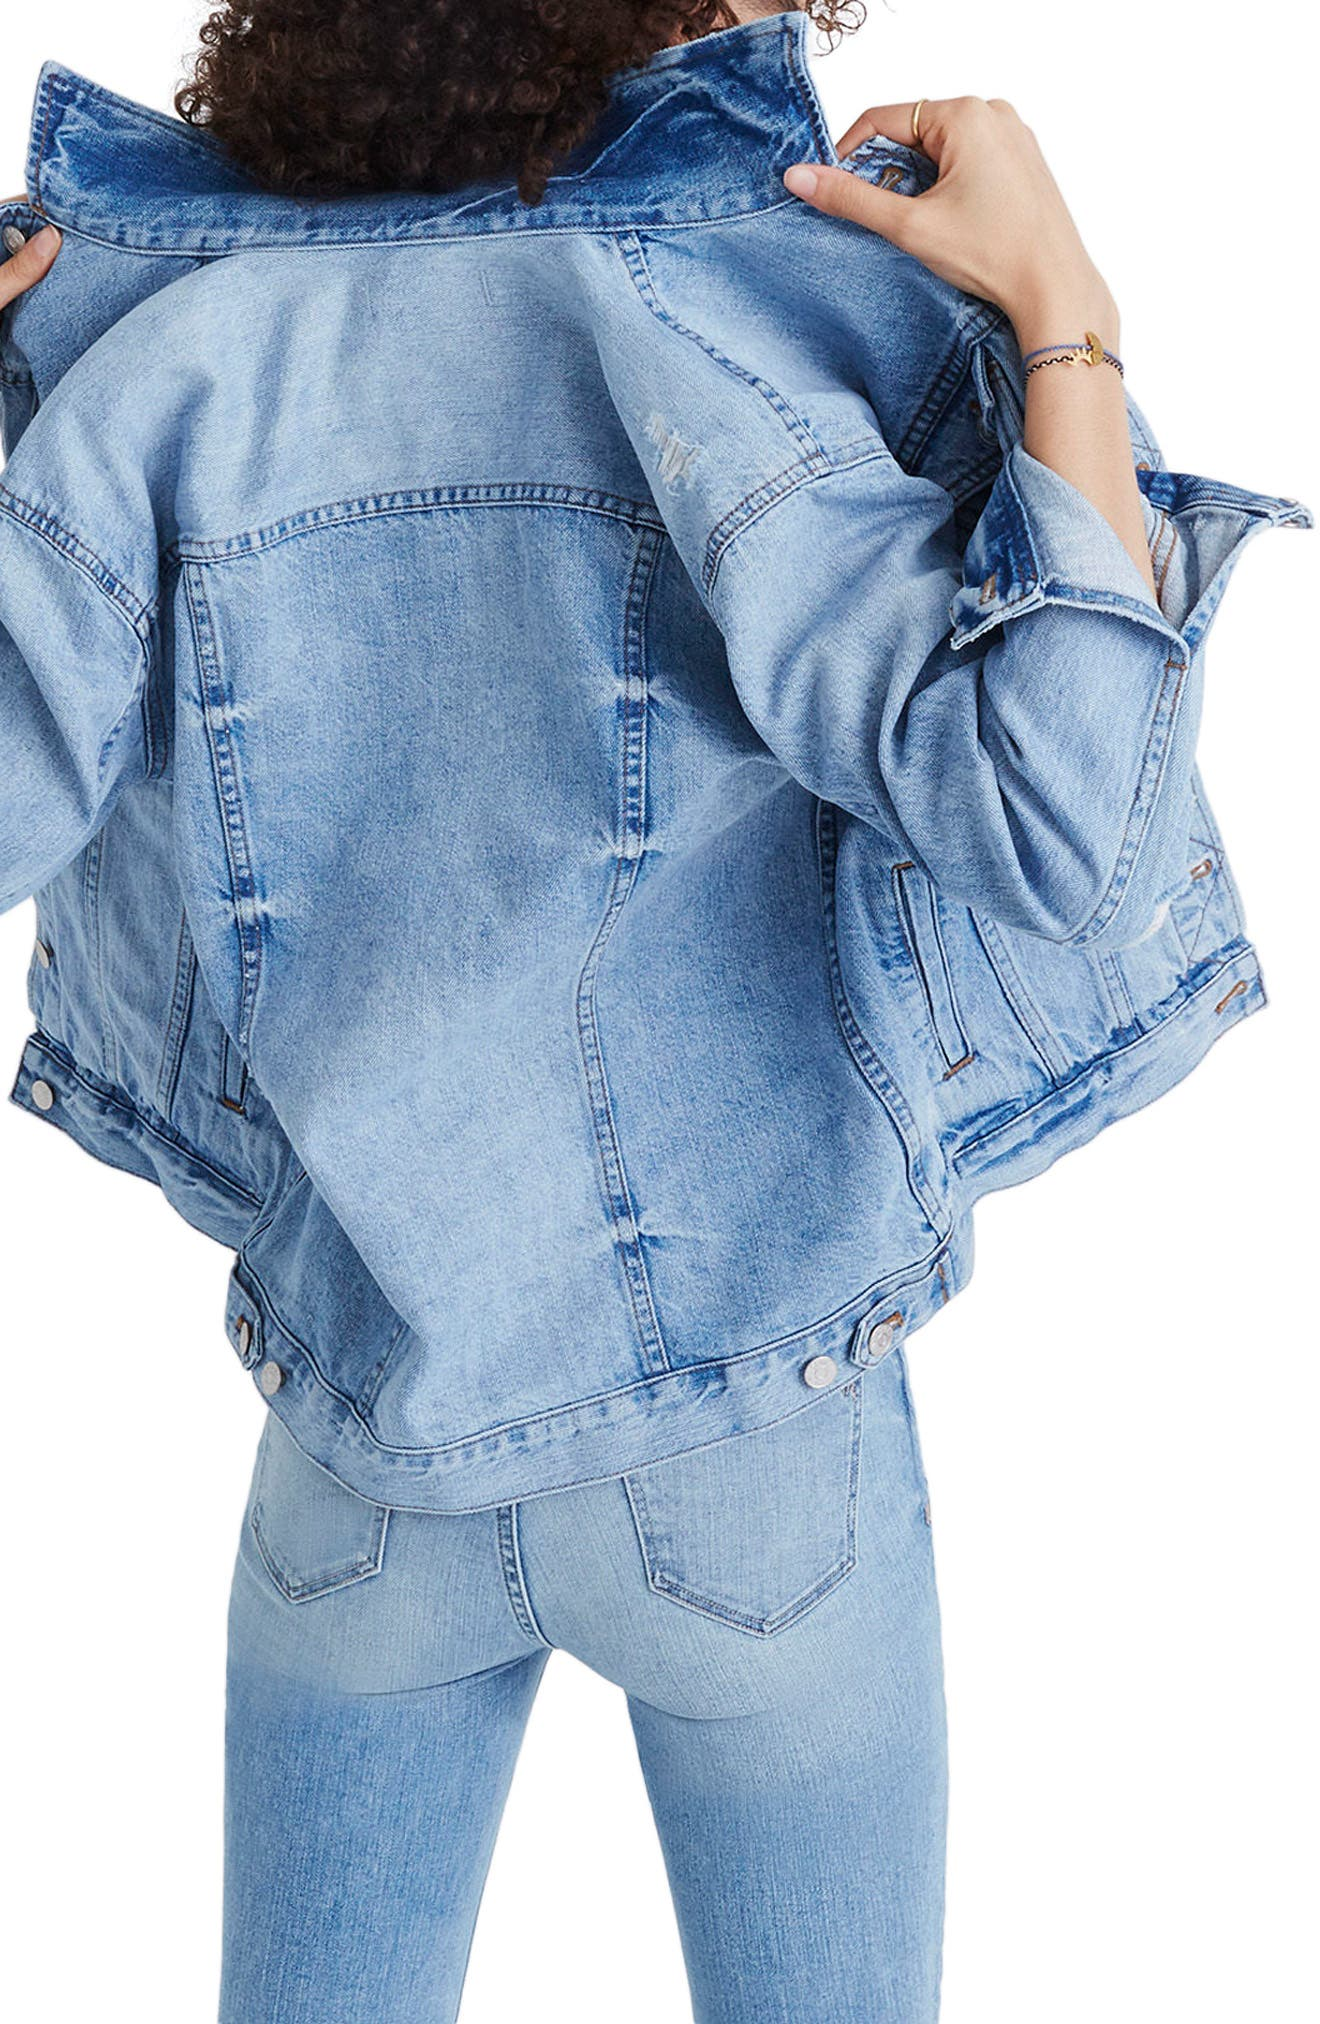 Distressed Oversize Jean Jacket,                             Alternate thumbnail 2, color,                             JUNCTION WASH